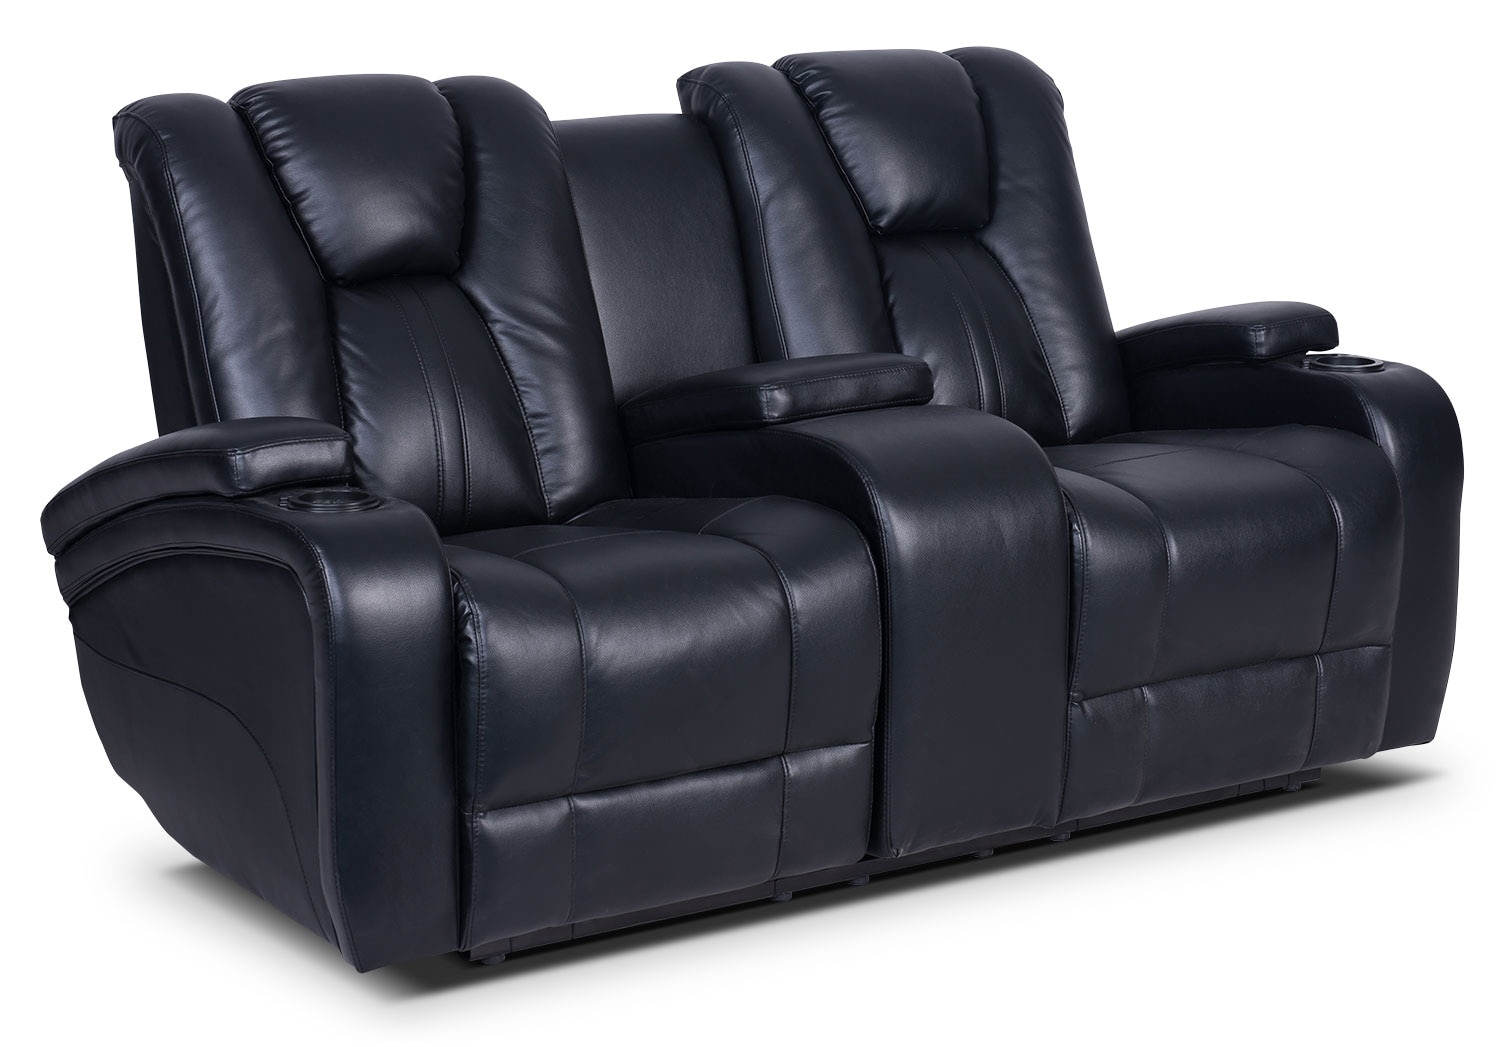 Living Room Furniture - Zander Bonded Leather Power Reclining Loveseat - Black